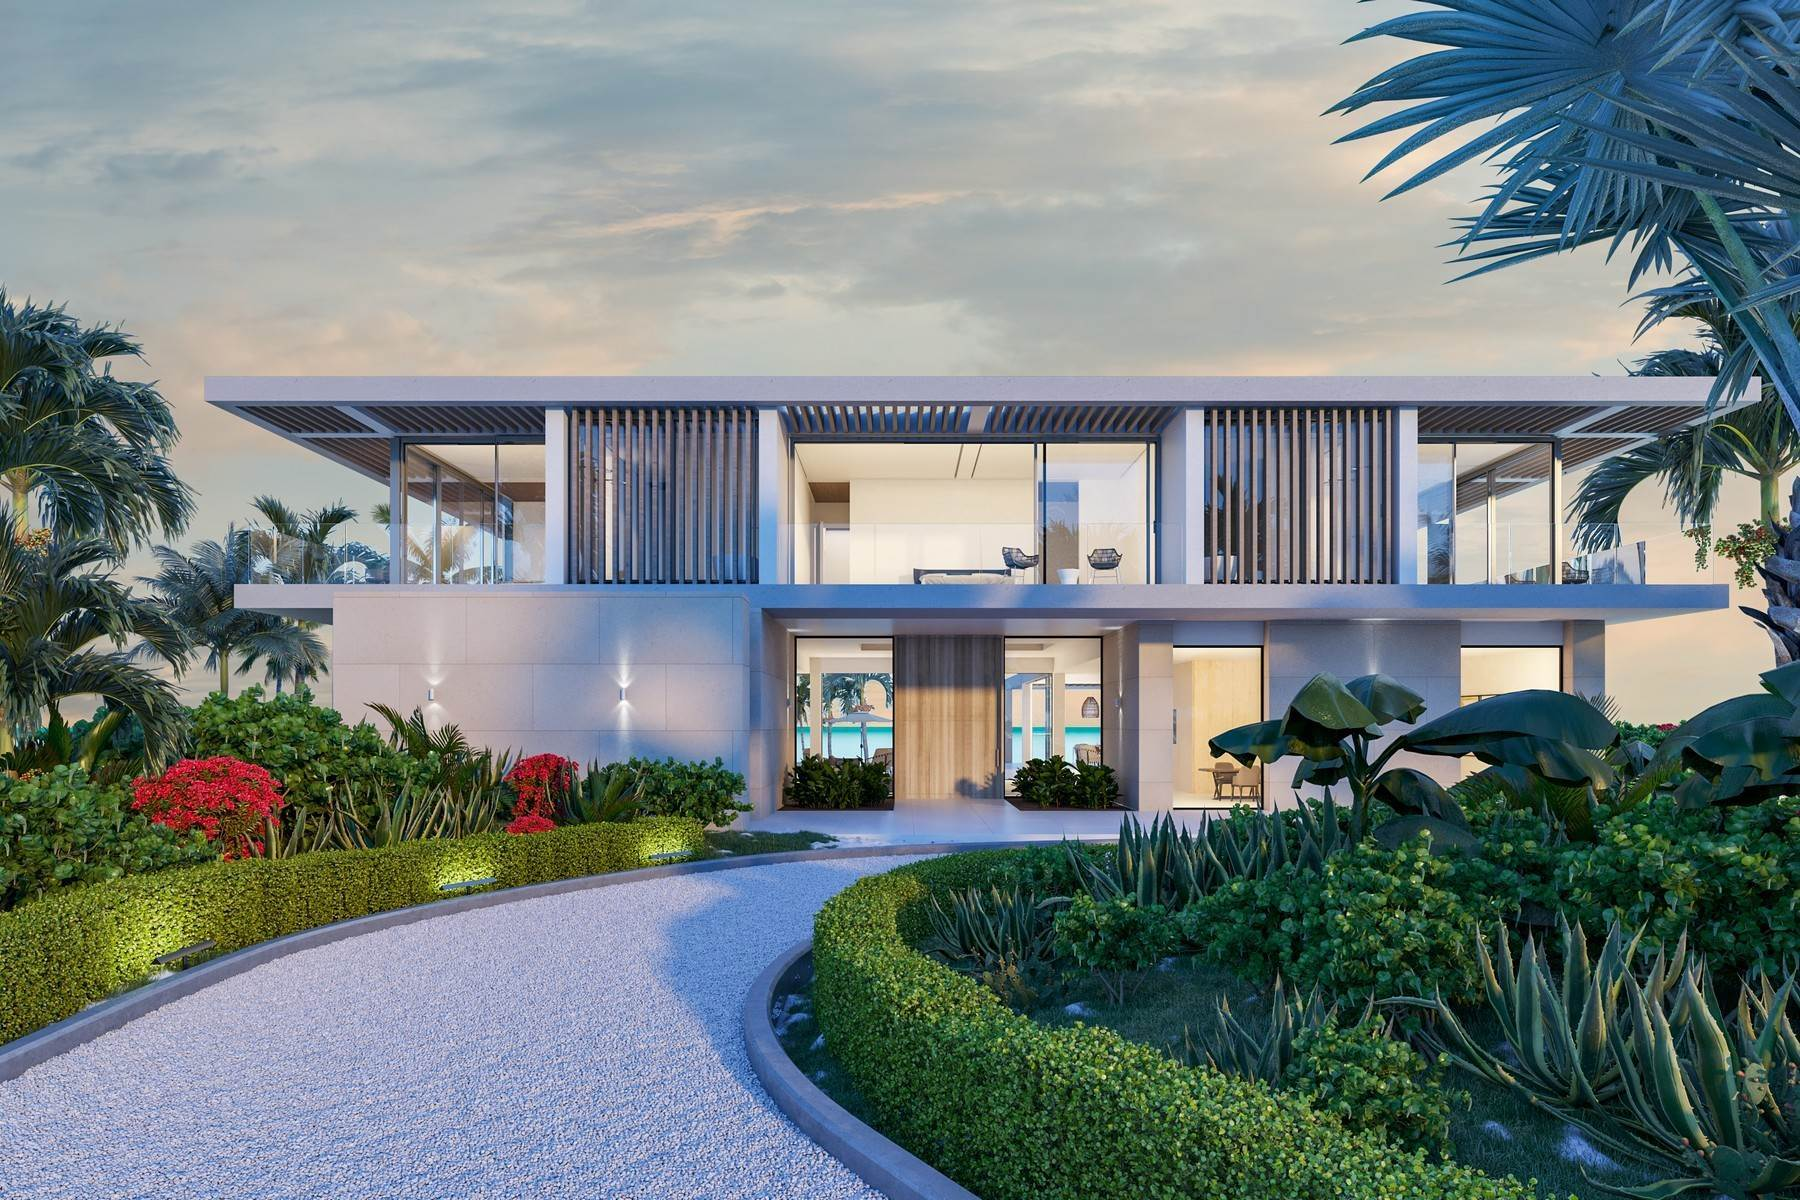 Single Family Homes for Sale at The Peninsula at Emerald Estate - Beach House 2 Emerald Point Beachfront, Leeward, Providenciales, TKCA 1ZZ Turks And Caicos Islands